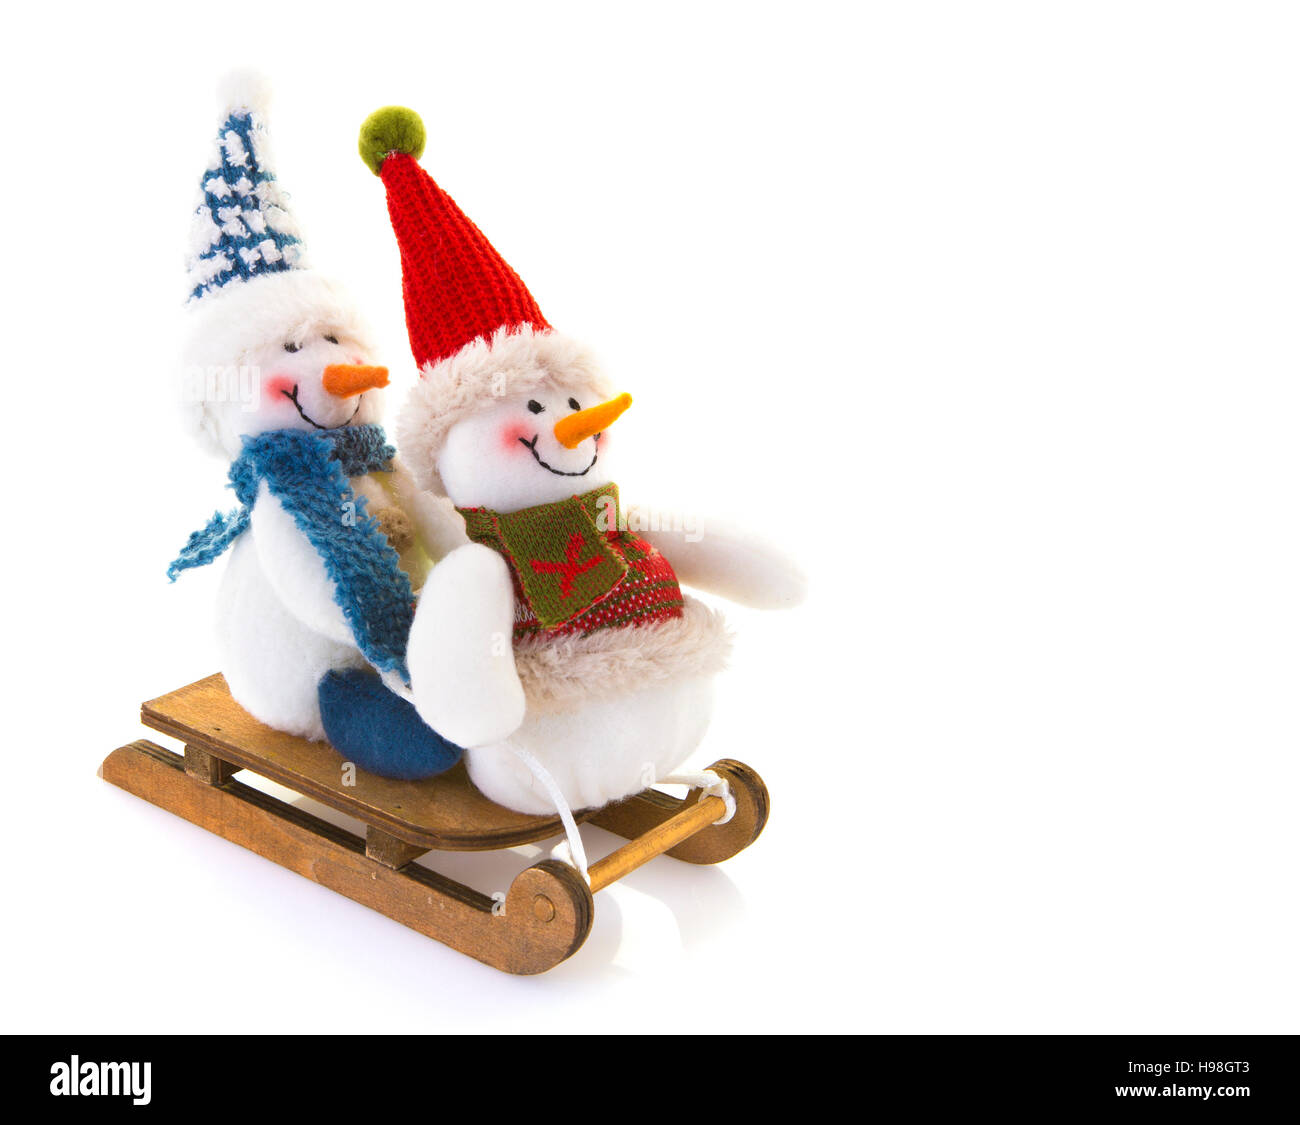 Two Snowmen on a sledge on a white background. - Stock Image